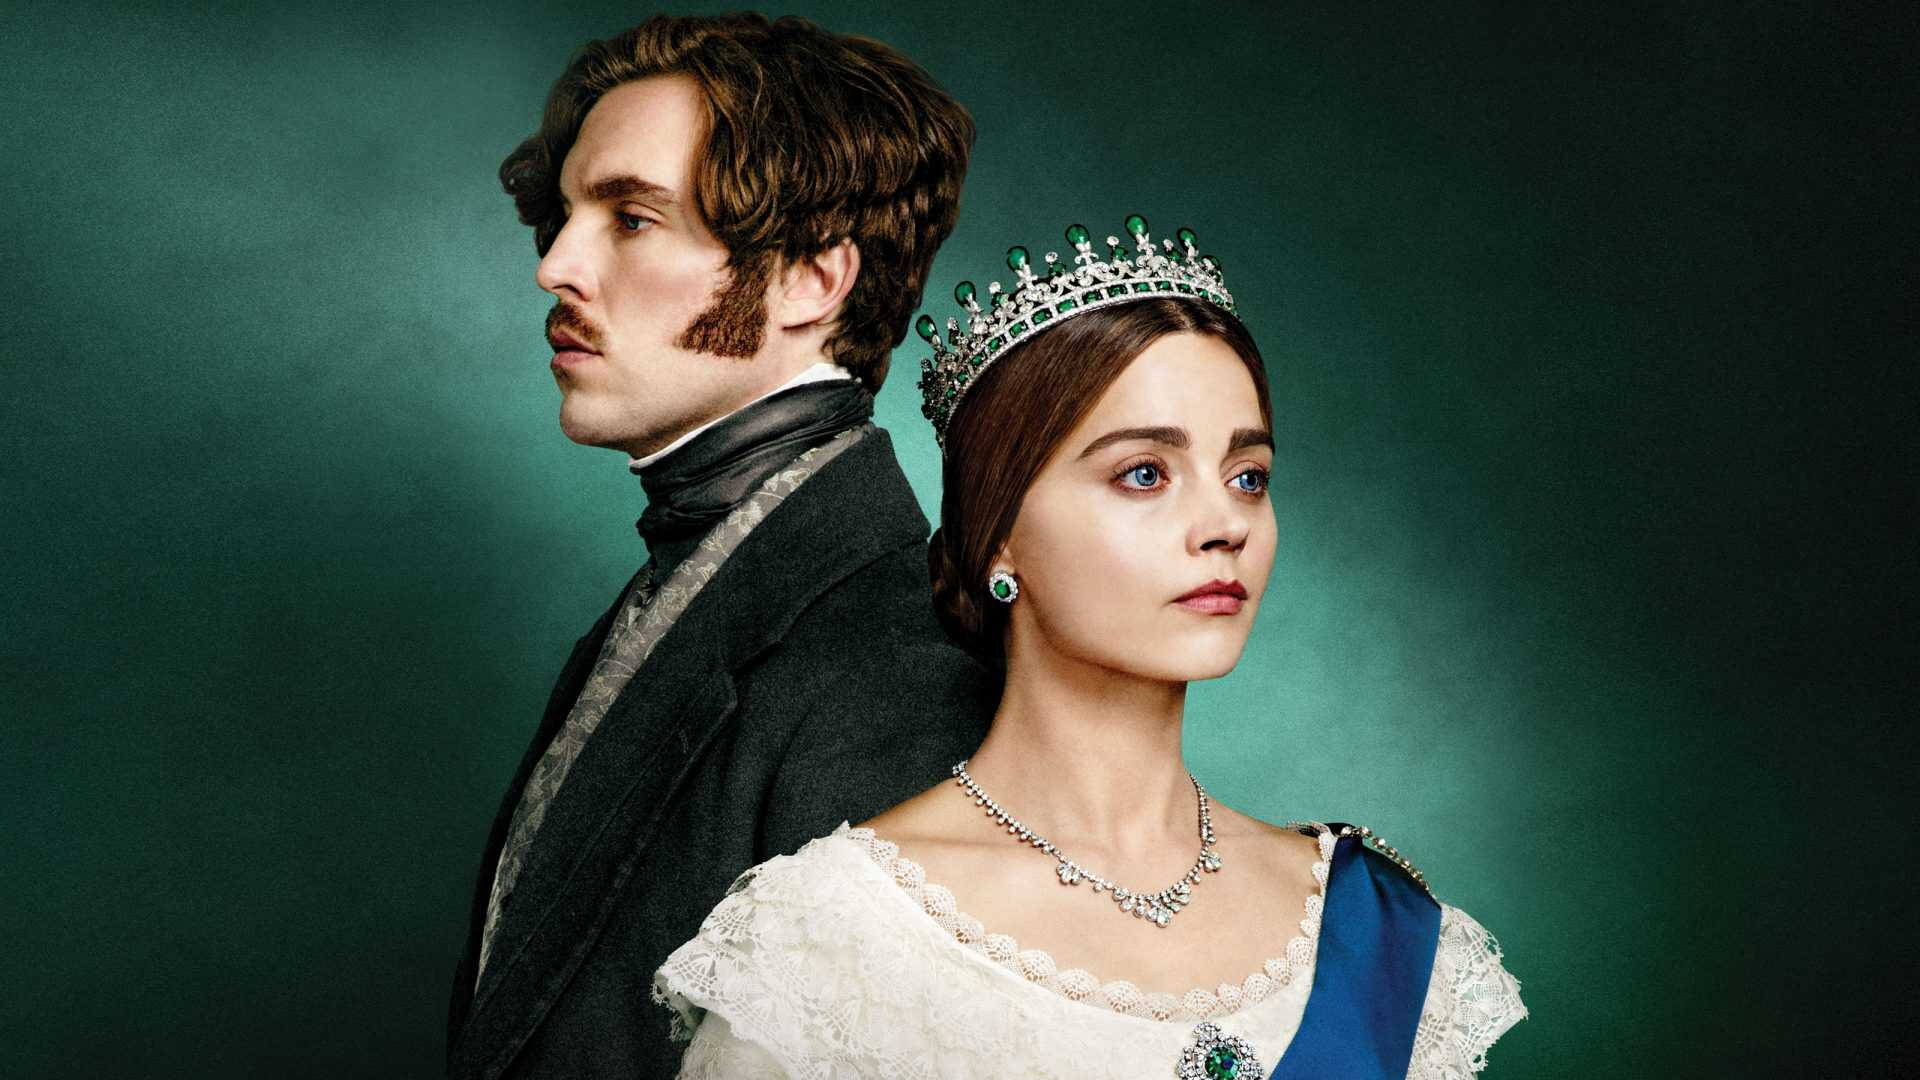 Reasons you should be watching Victoria on PBS Masterpiece